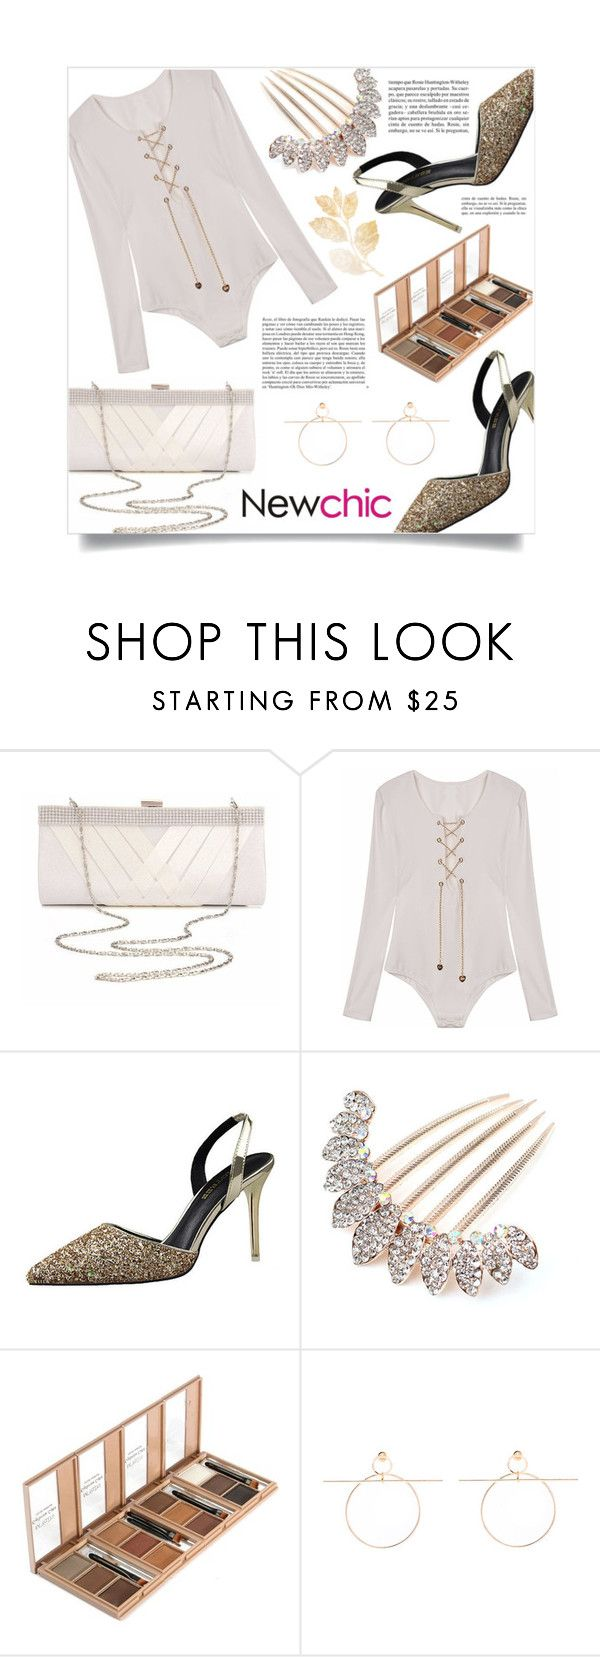 """Newchic"" by enola-pycroft on Polyvore featuring Whiteley"